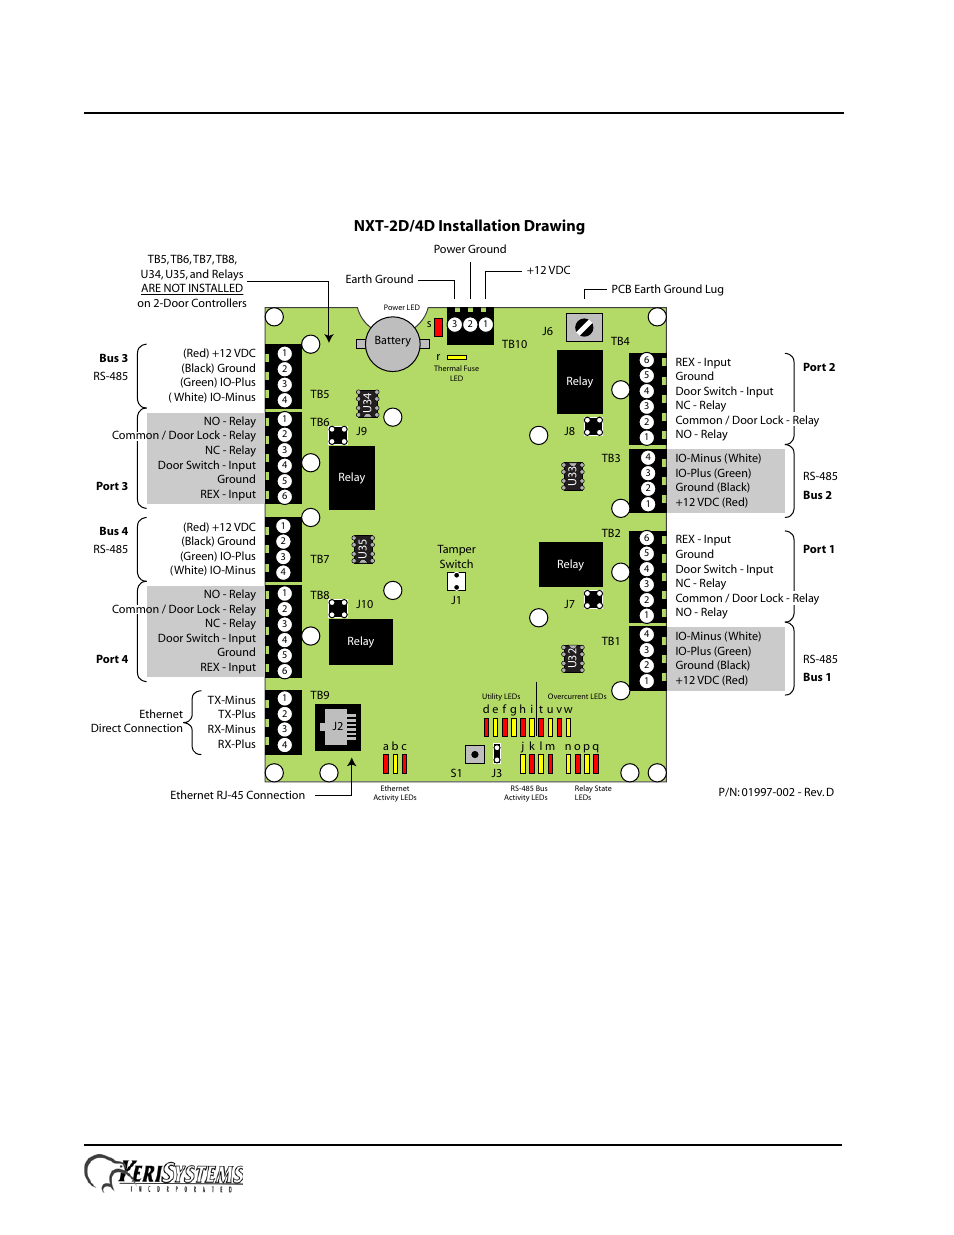 keri systems nxt 4 d page1 keri systems nxt 4 d user manual 6 pages also for nxt 2 d 4D Diagram Architecture at n-0.co